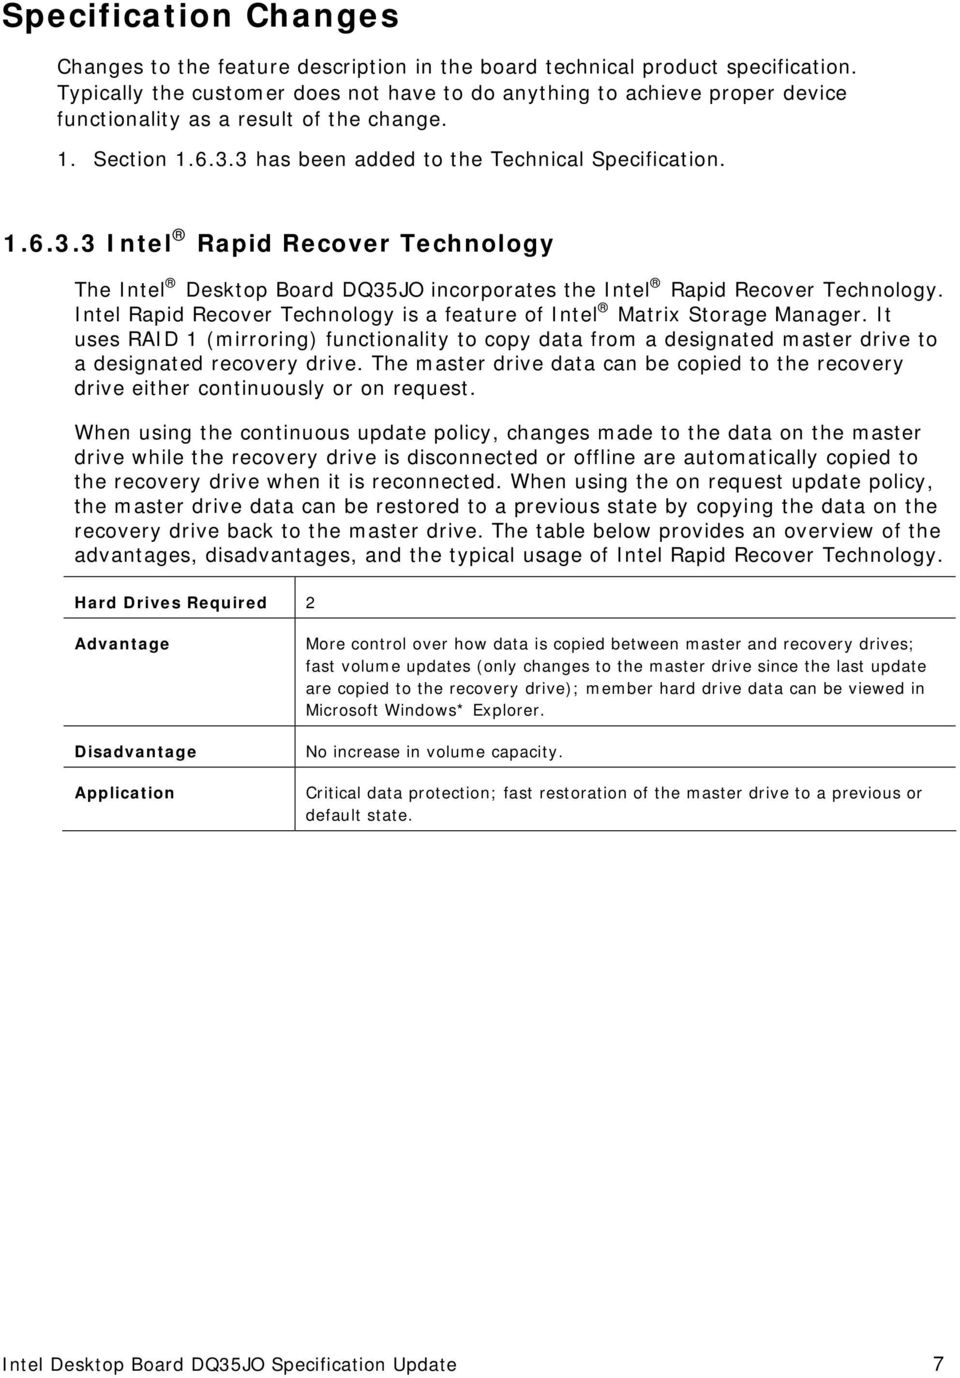 3 has been added to the Technical Specification. 1.6.3.3 Intel Rapid Recover Technology The Intel Desktop Board DQ35JO incorporates the Intel Rapid Recover Technology.